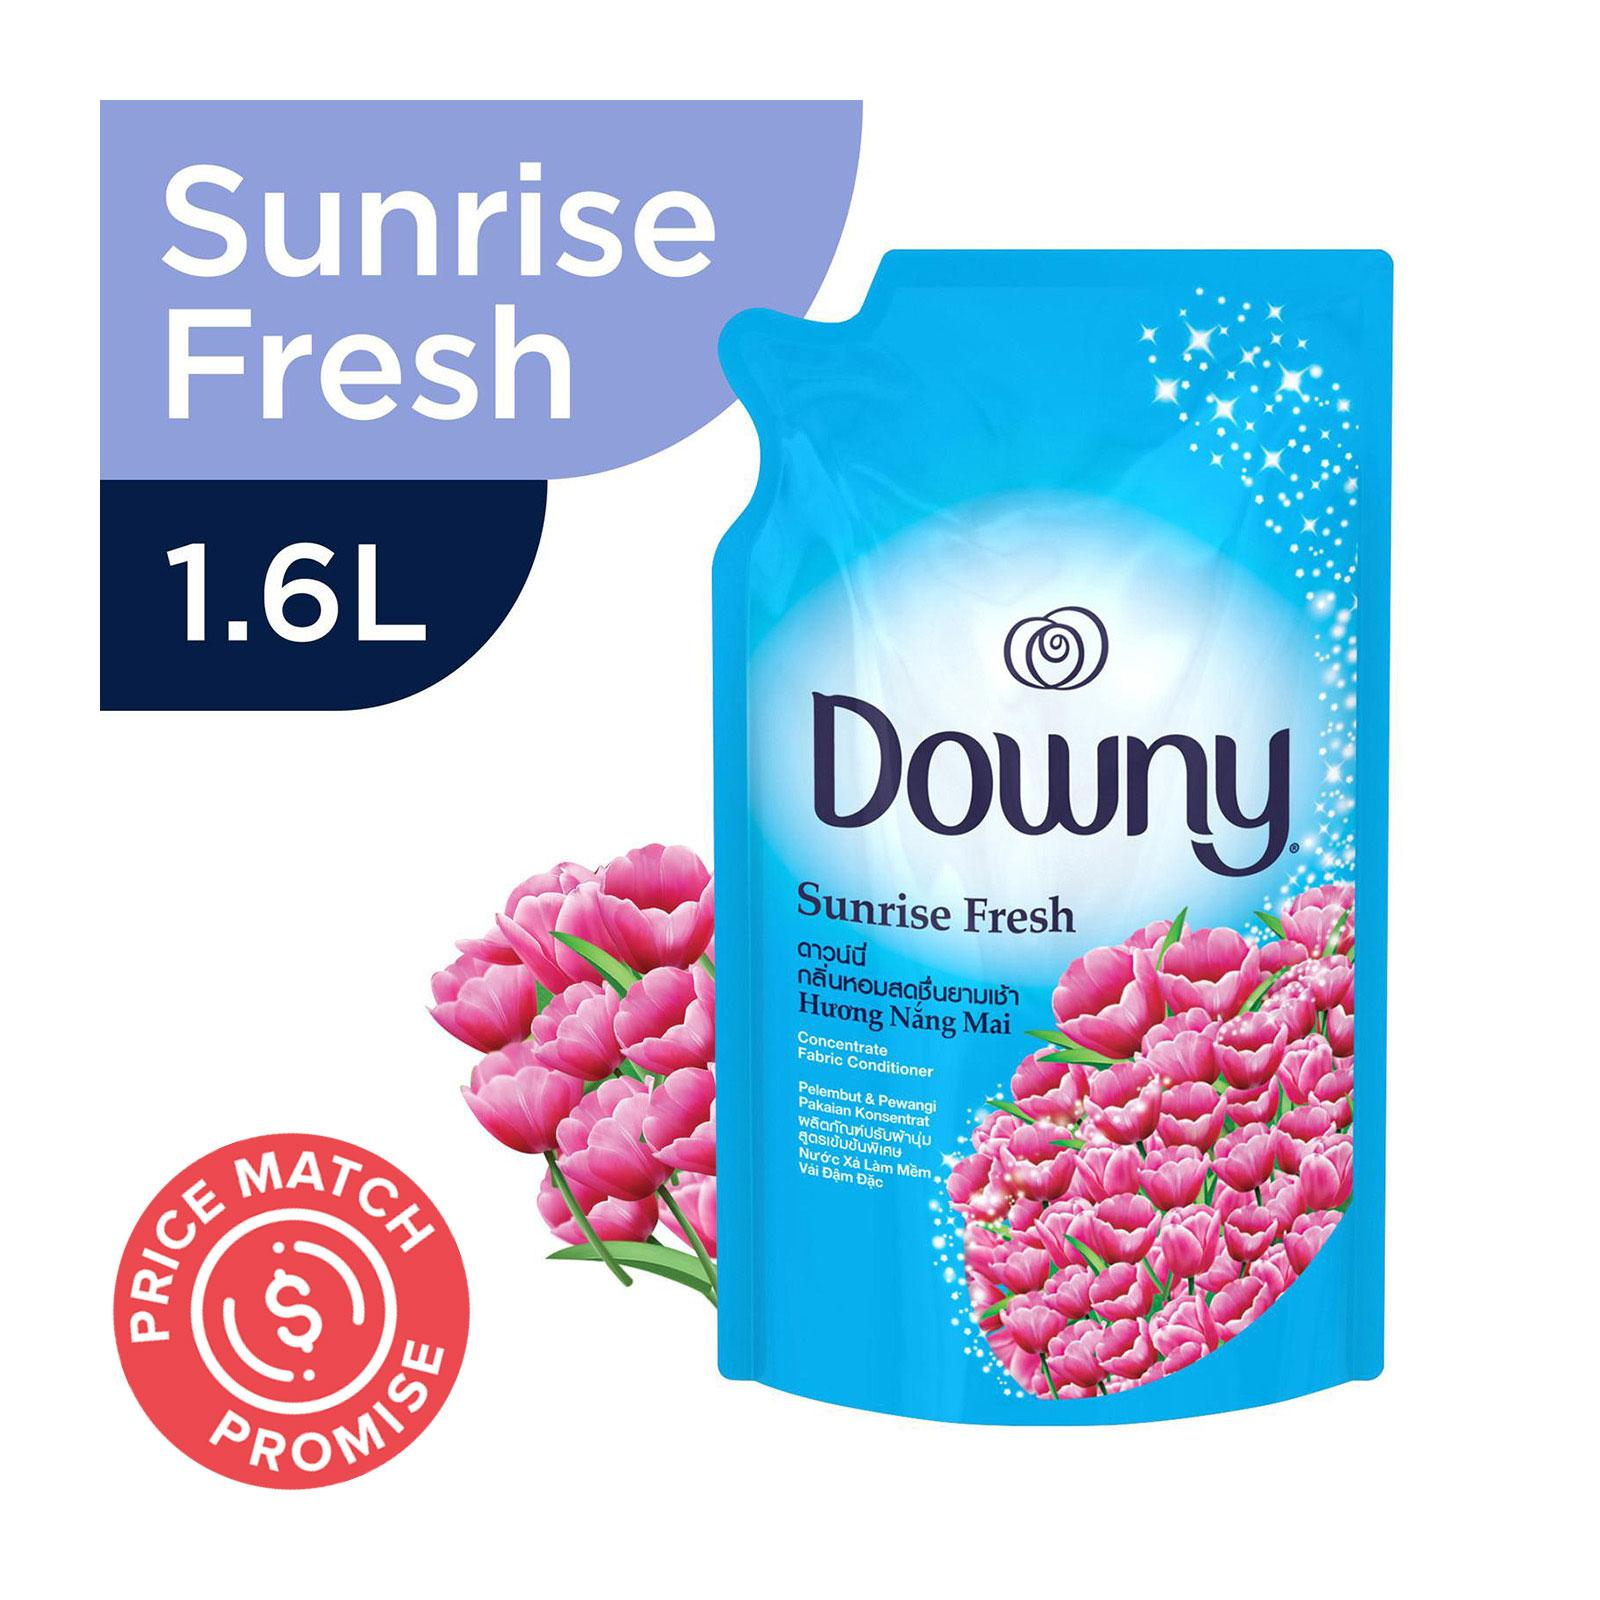 Downy Sunrise Fresh Concentrate Fabric Softener Refill